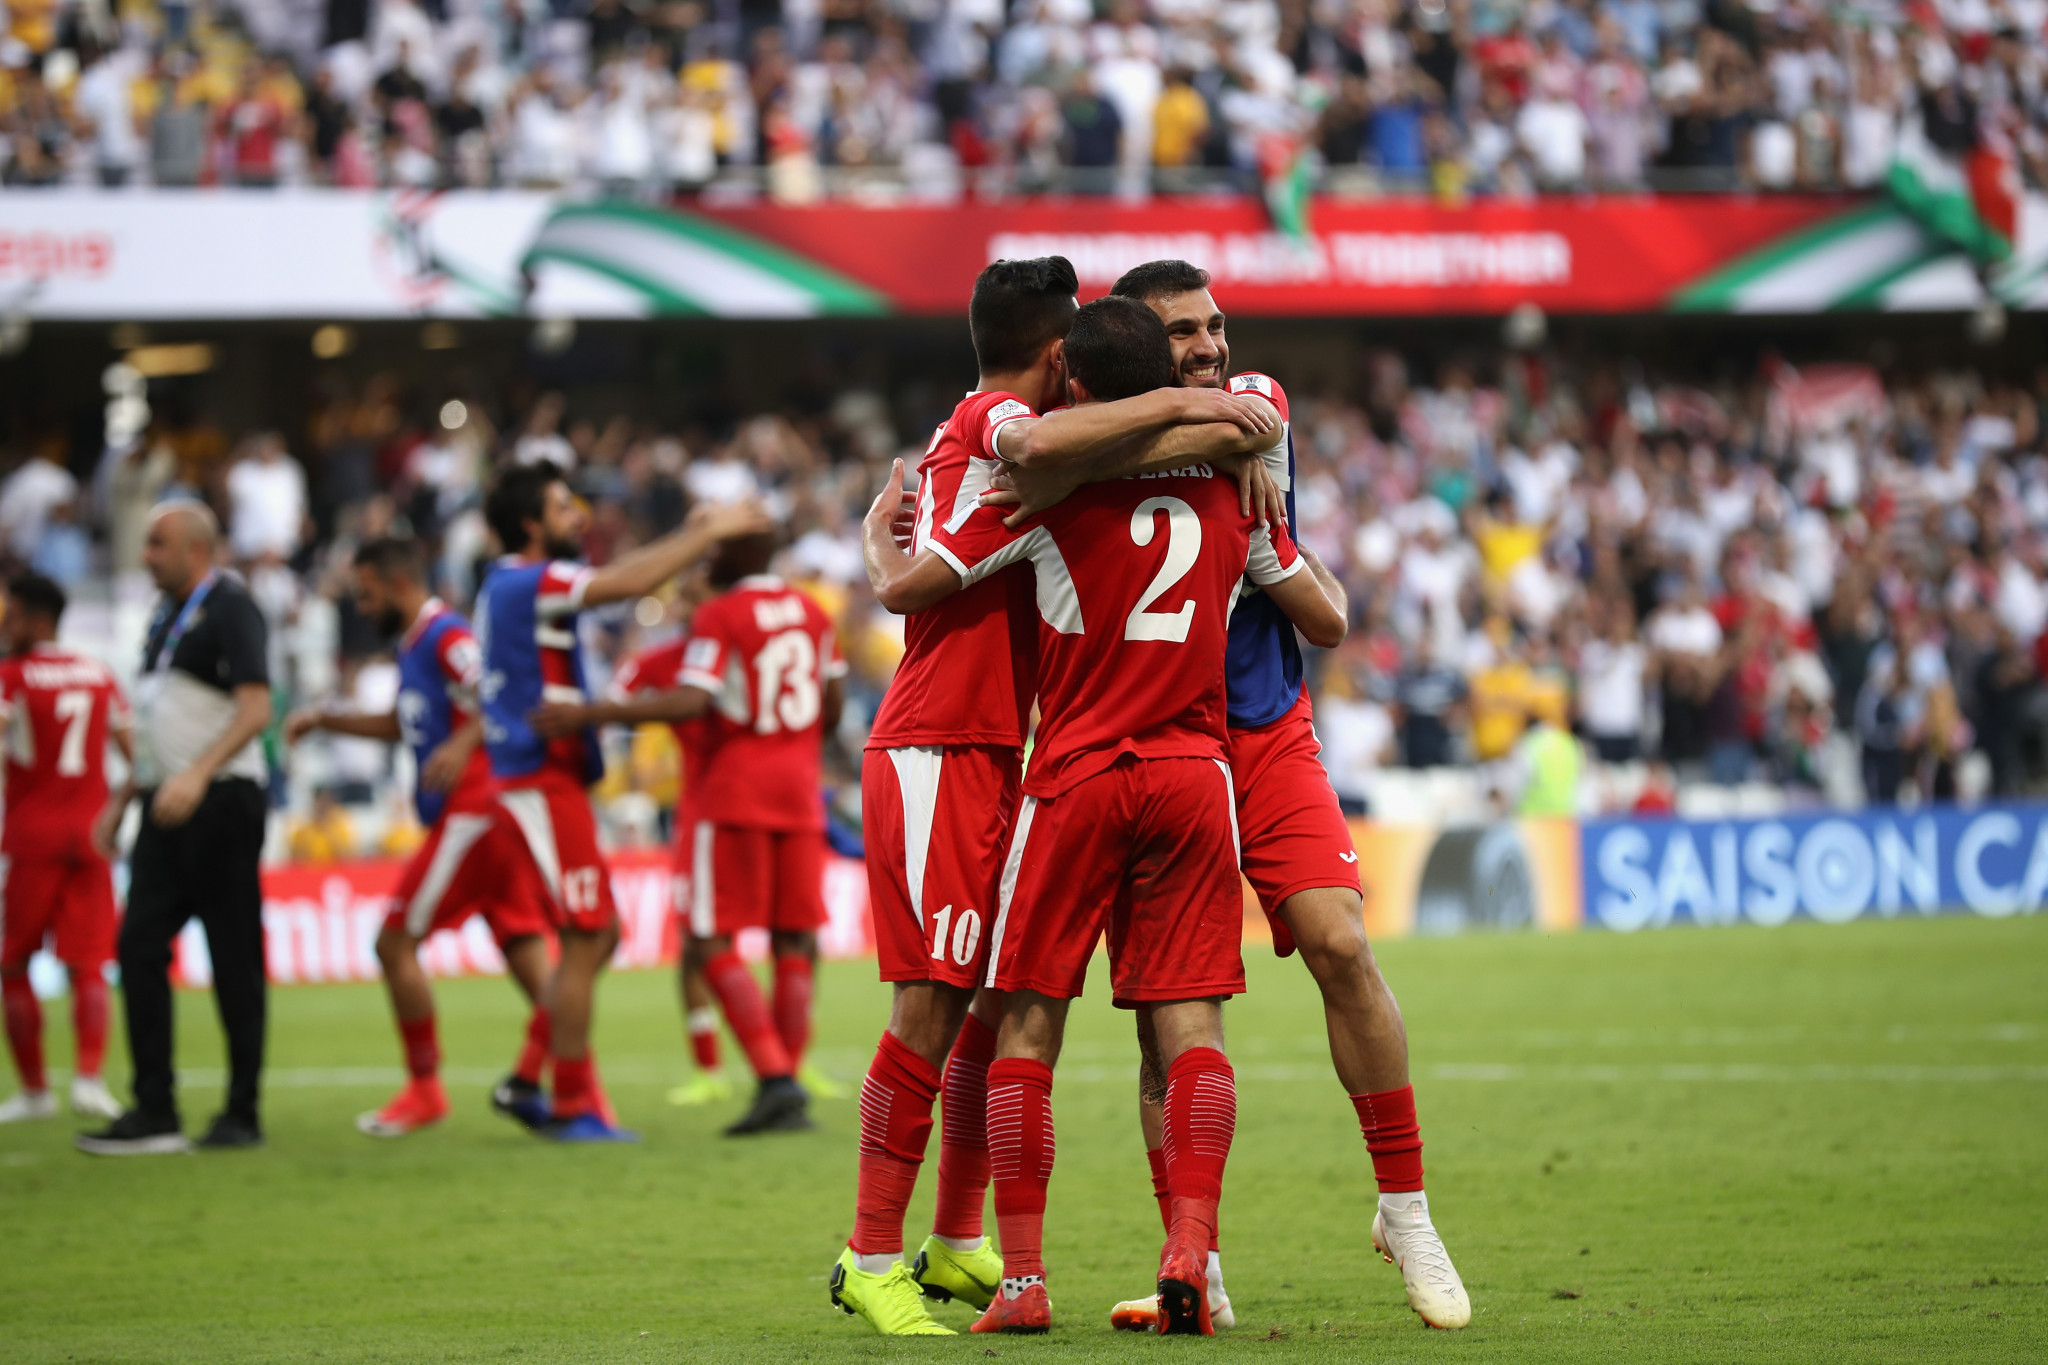 Jordan ease past Syria to seal knock-out spot at AFC Asian Cup